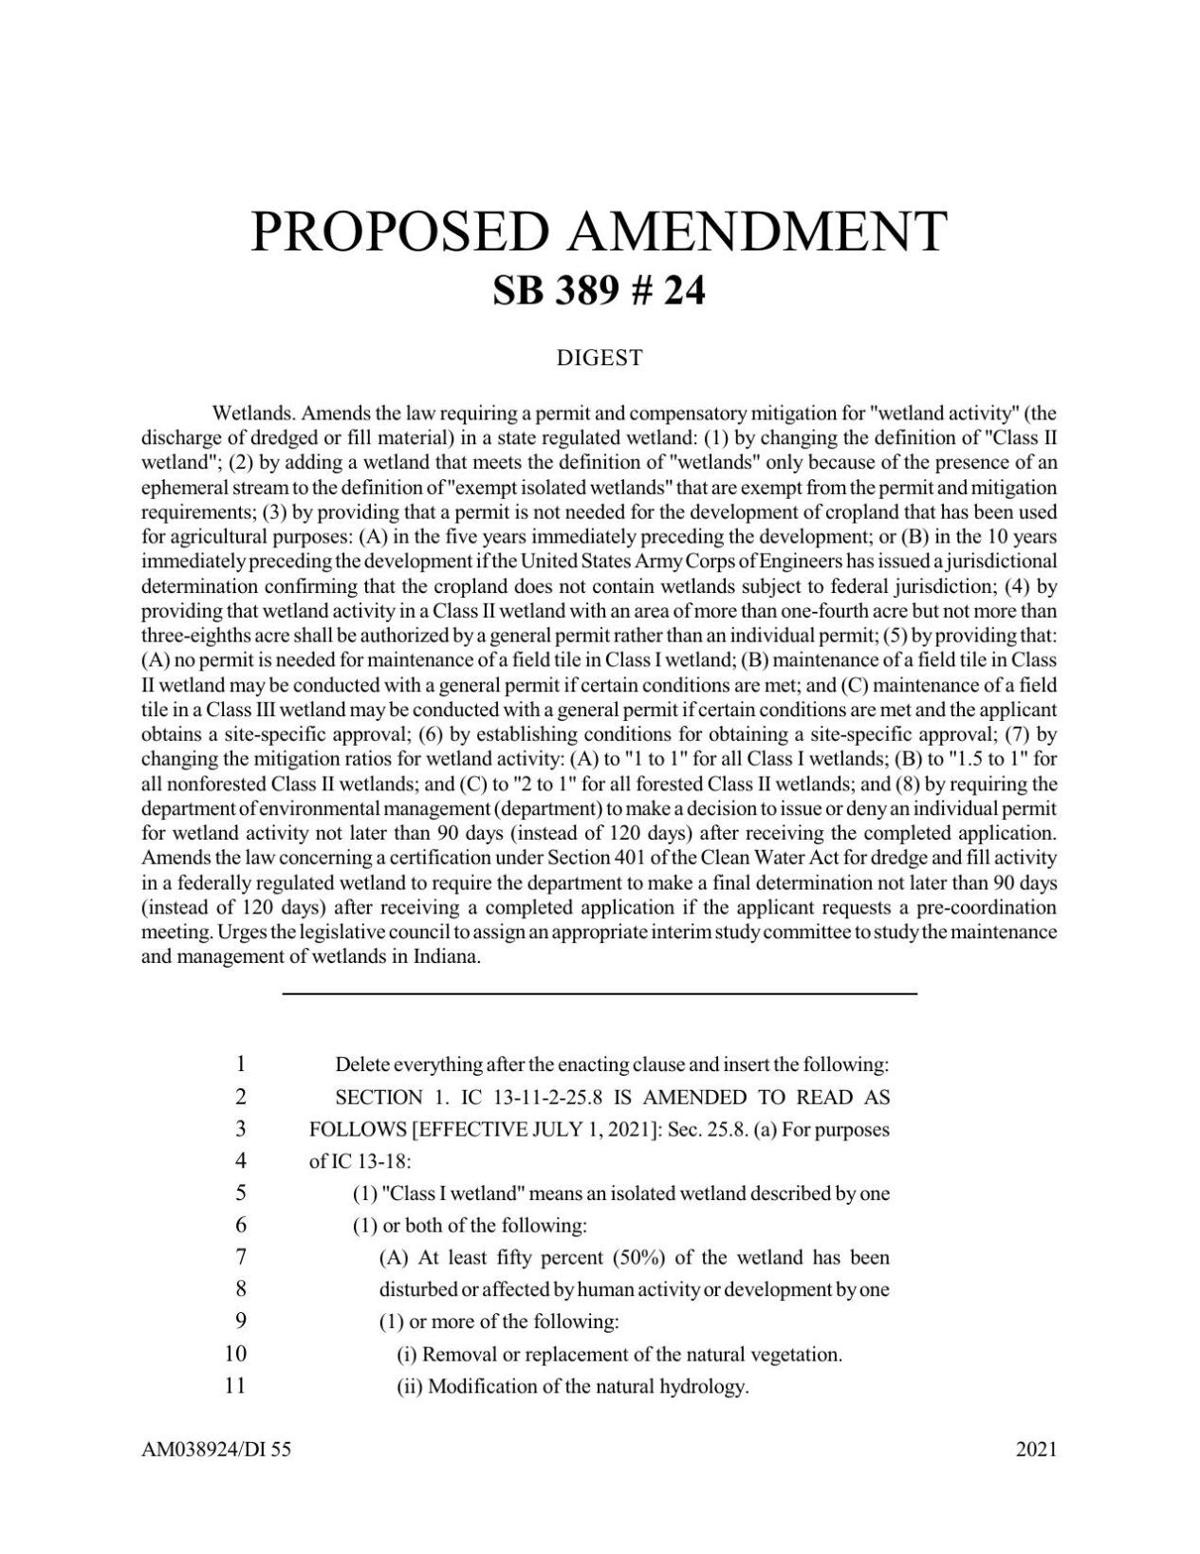 Senate Bill 389 as revised April 7, 2021